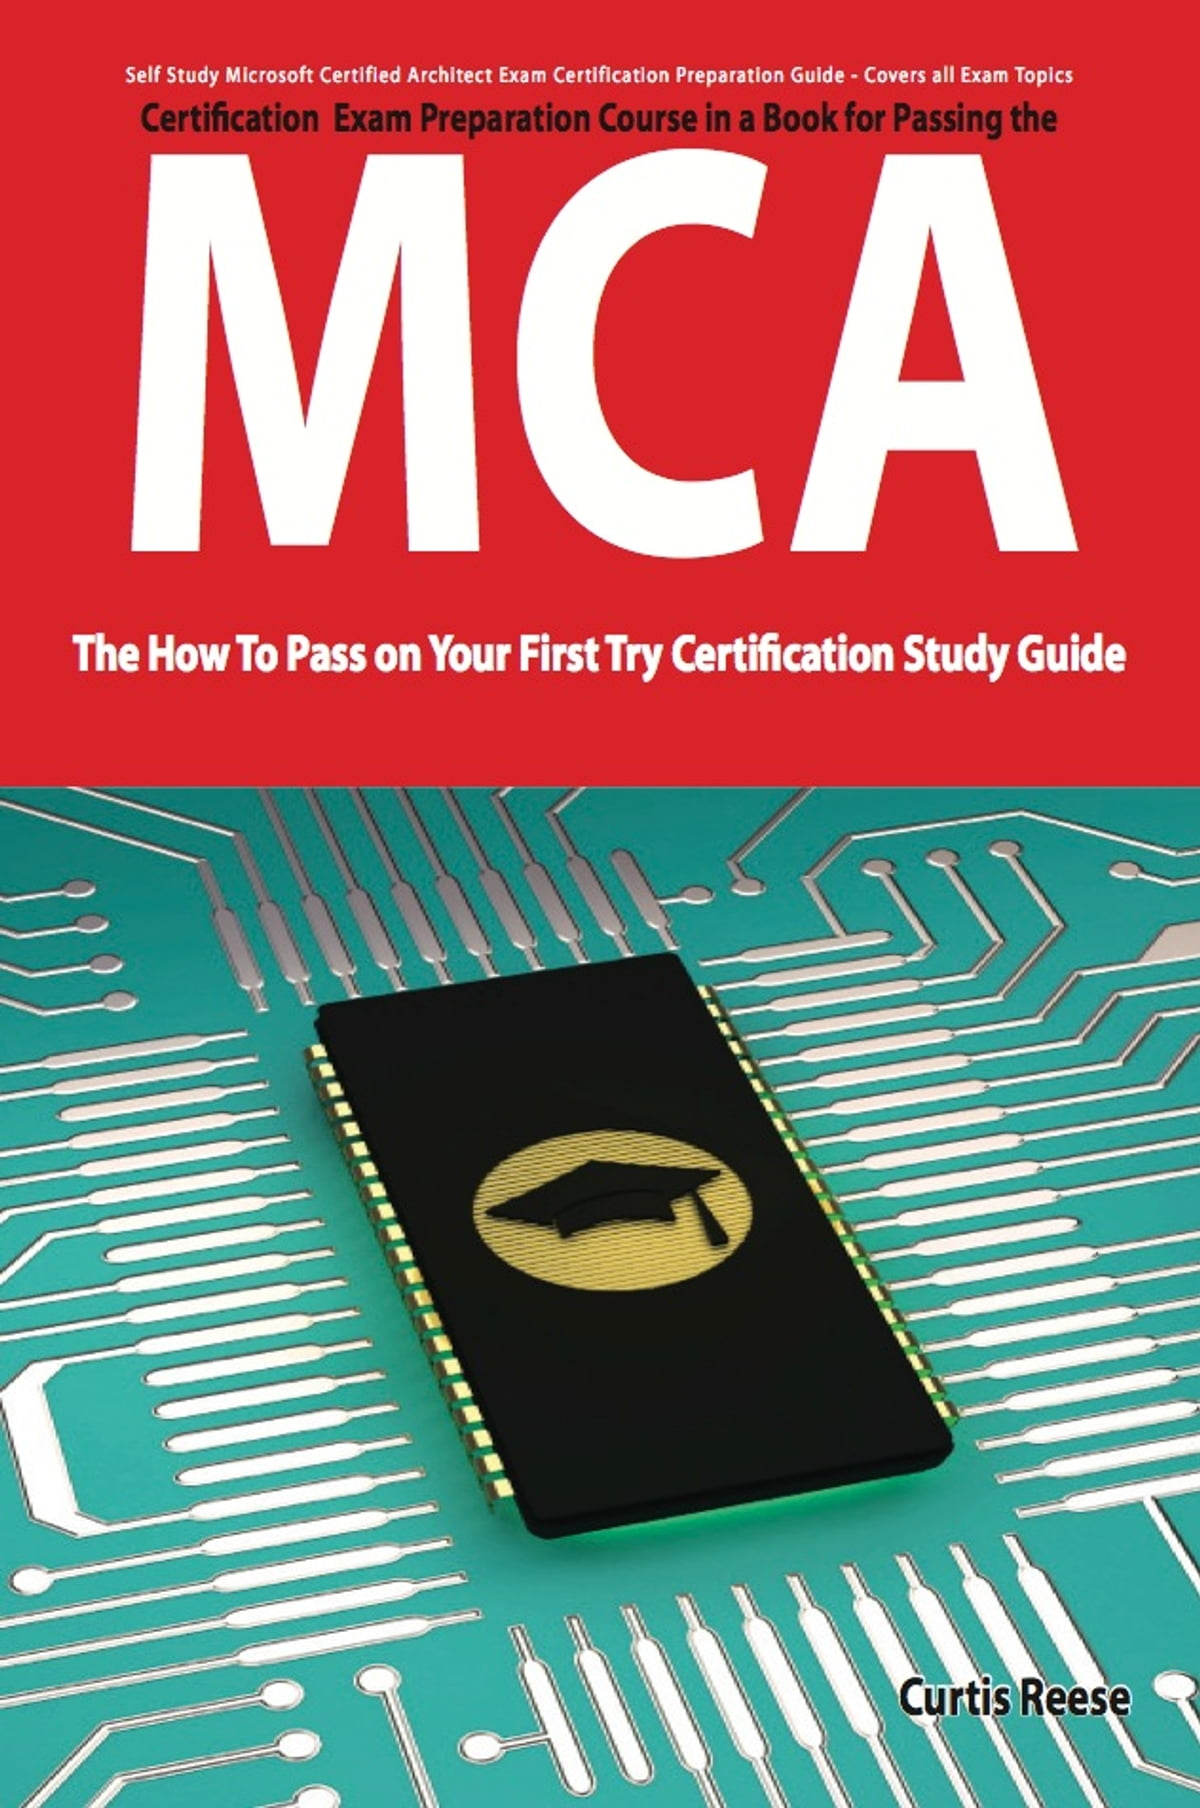 Microsoft Certified Architect Certification Mca Exam Preparation